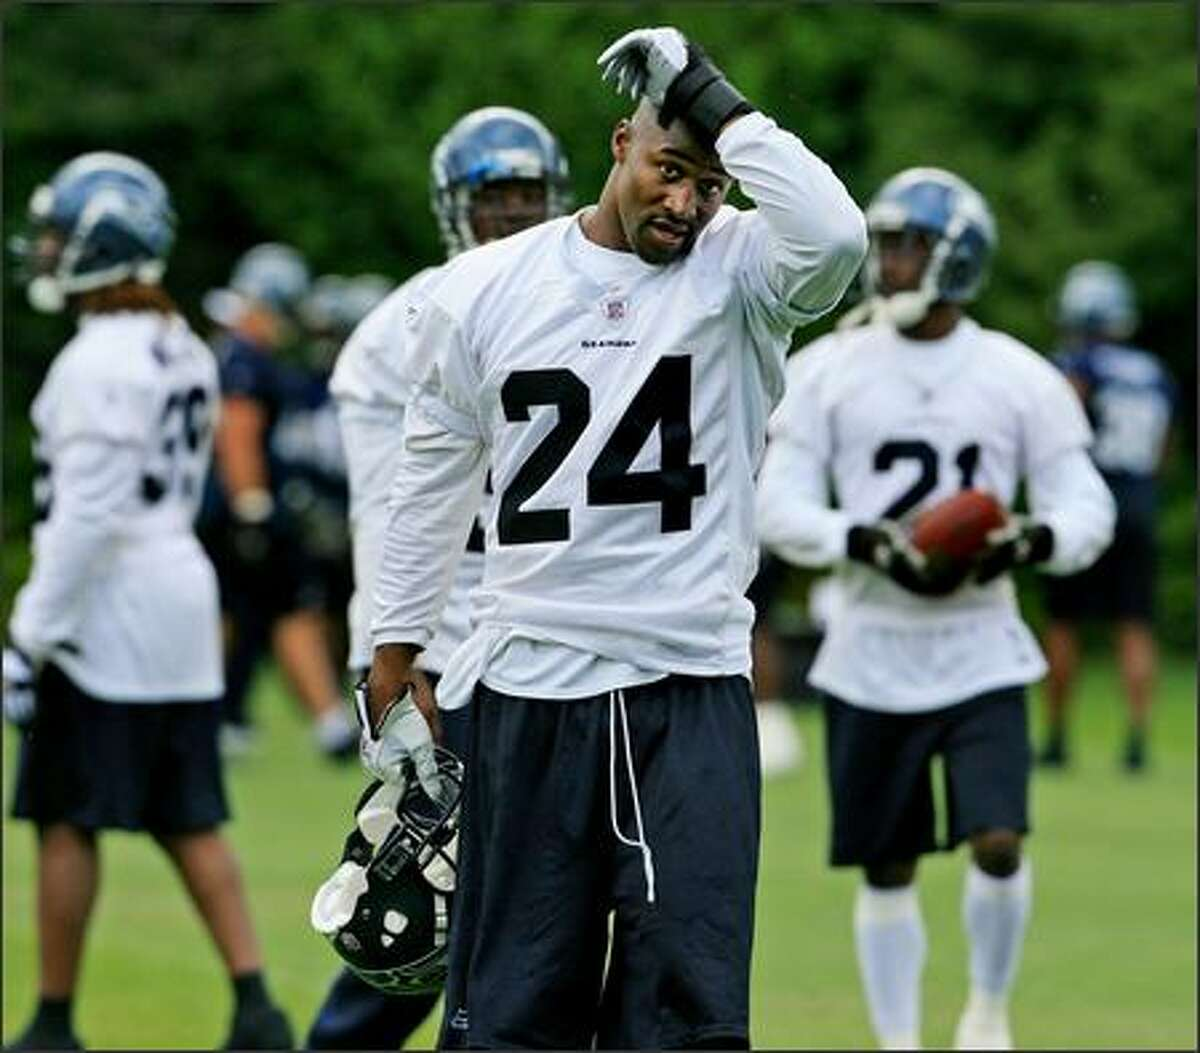 Seattle Seahawks safety Deon Grant during the final practice of the last mini-camp in Kirkland, WA on Thursday, June 14, 2007. The next practice will be training camp, which begins July 28.